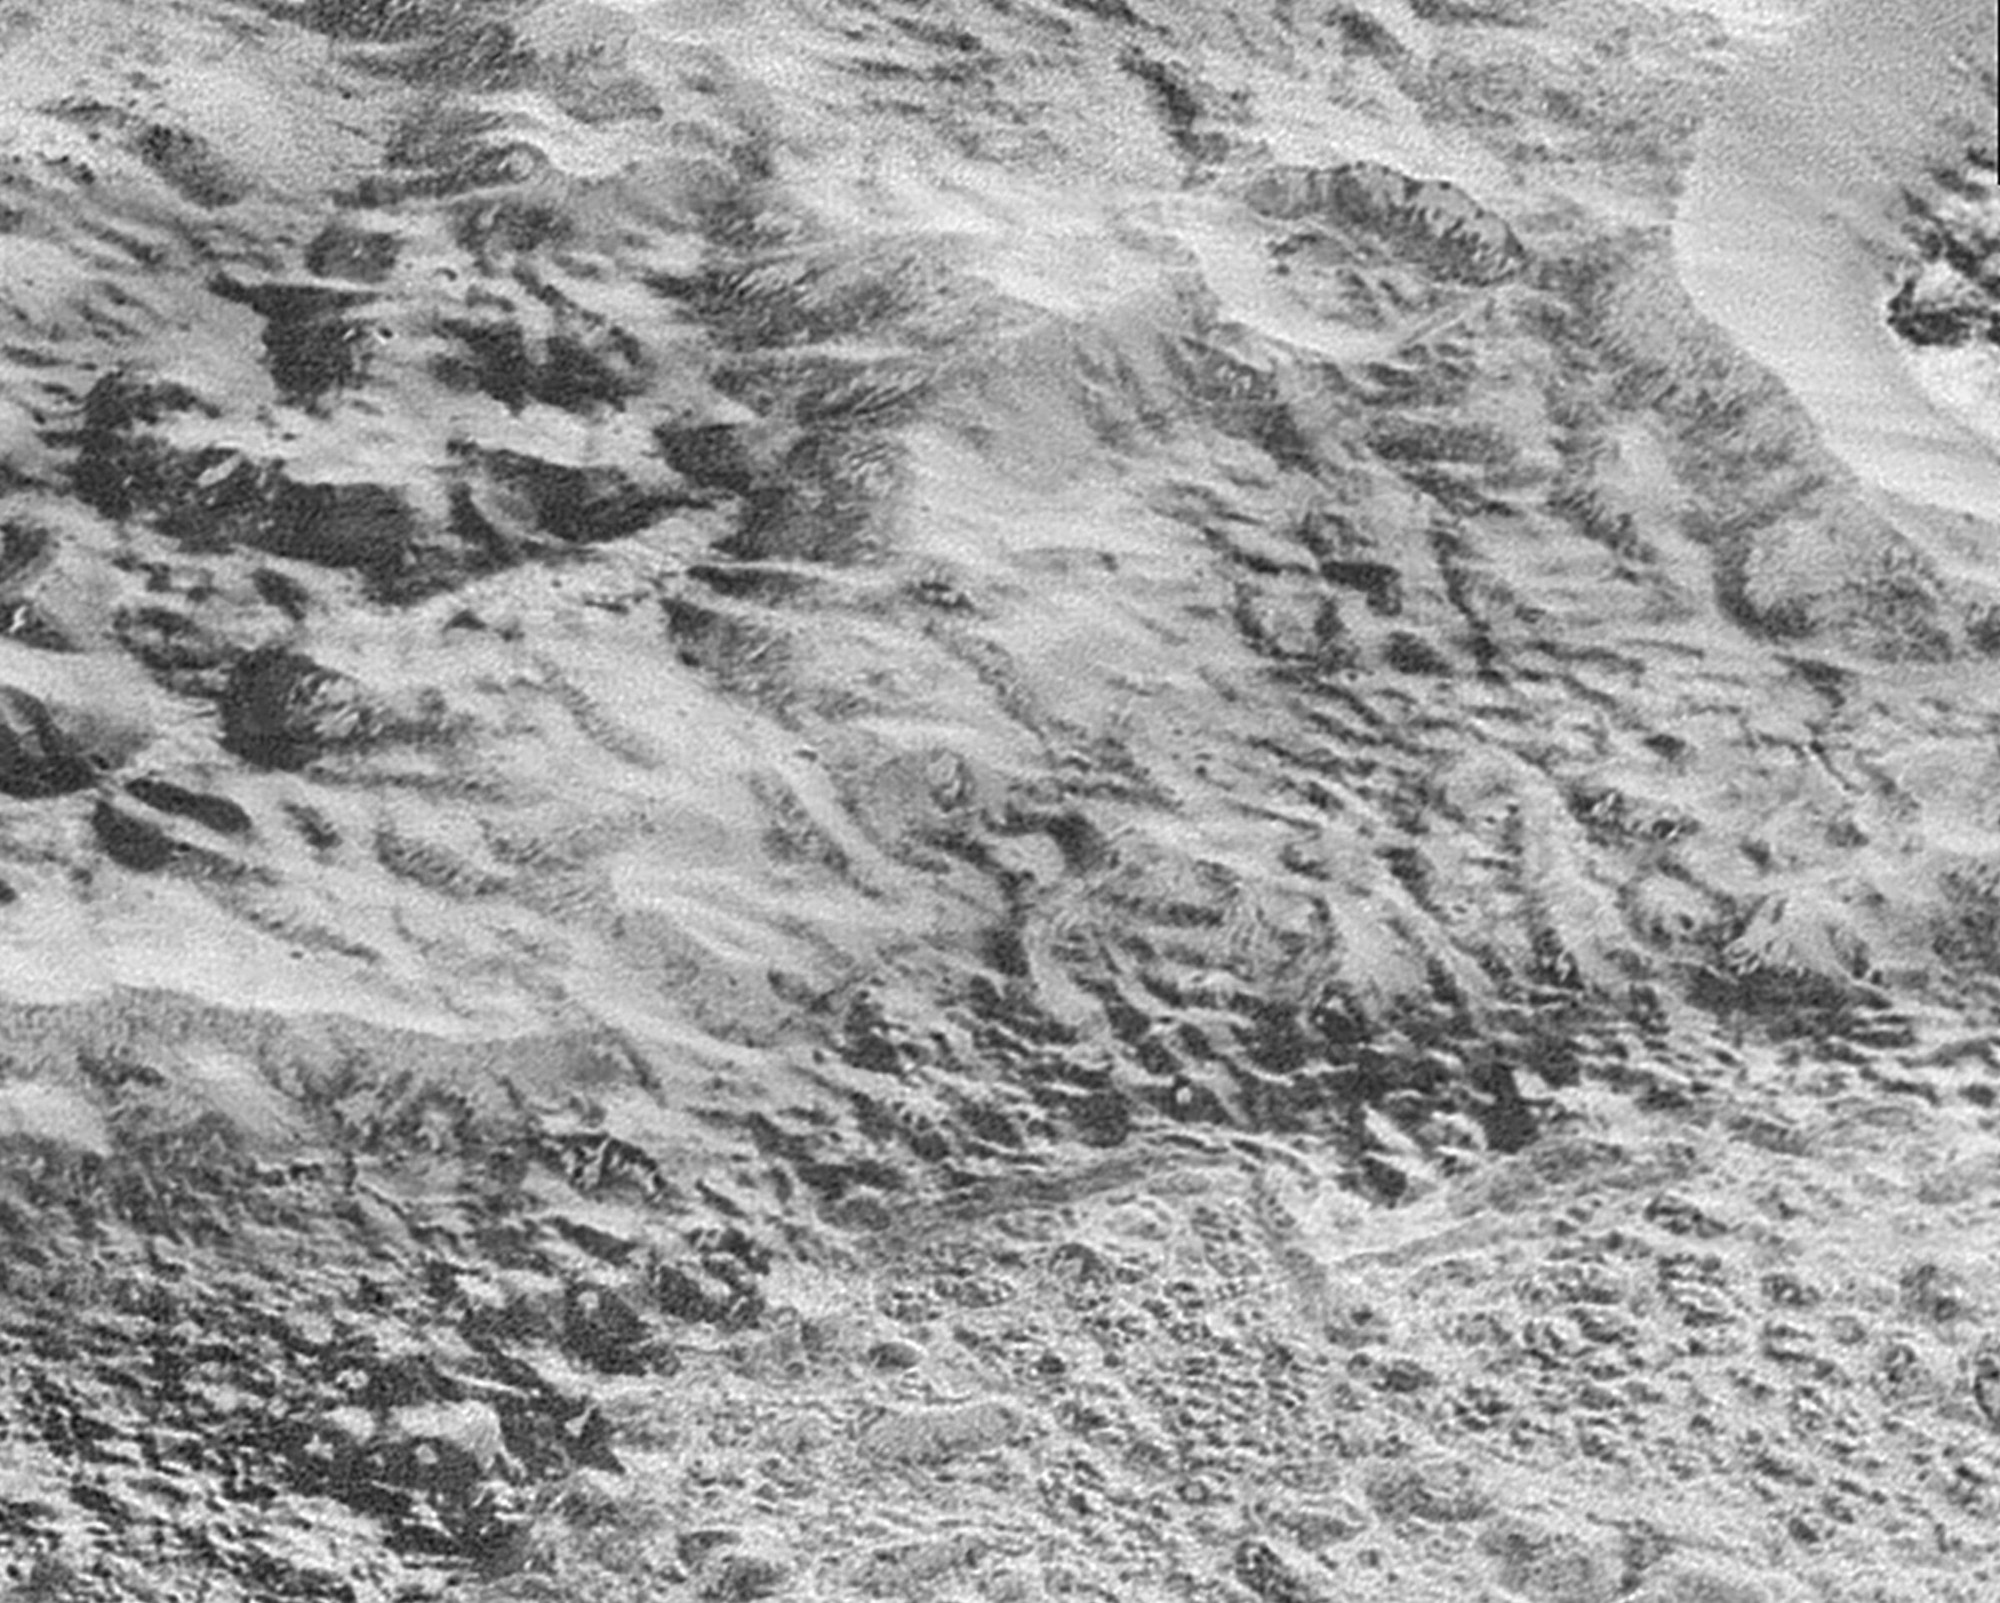 Highest Resolution Images Of Pluto Reveal The Frozen Universe